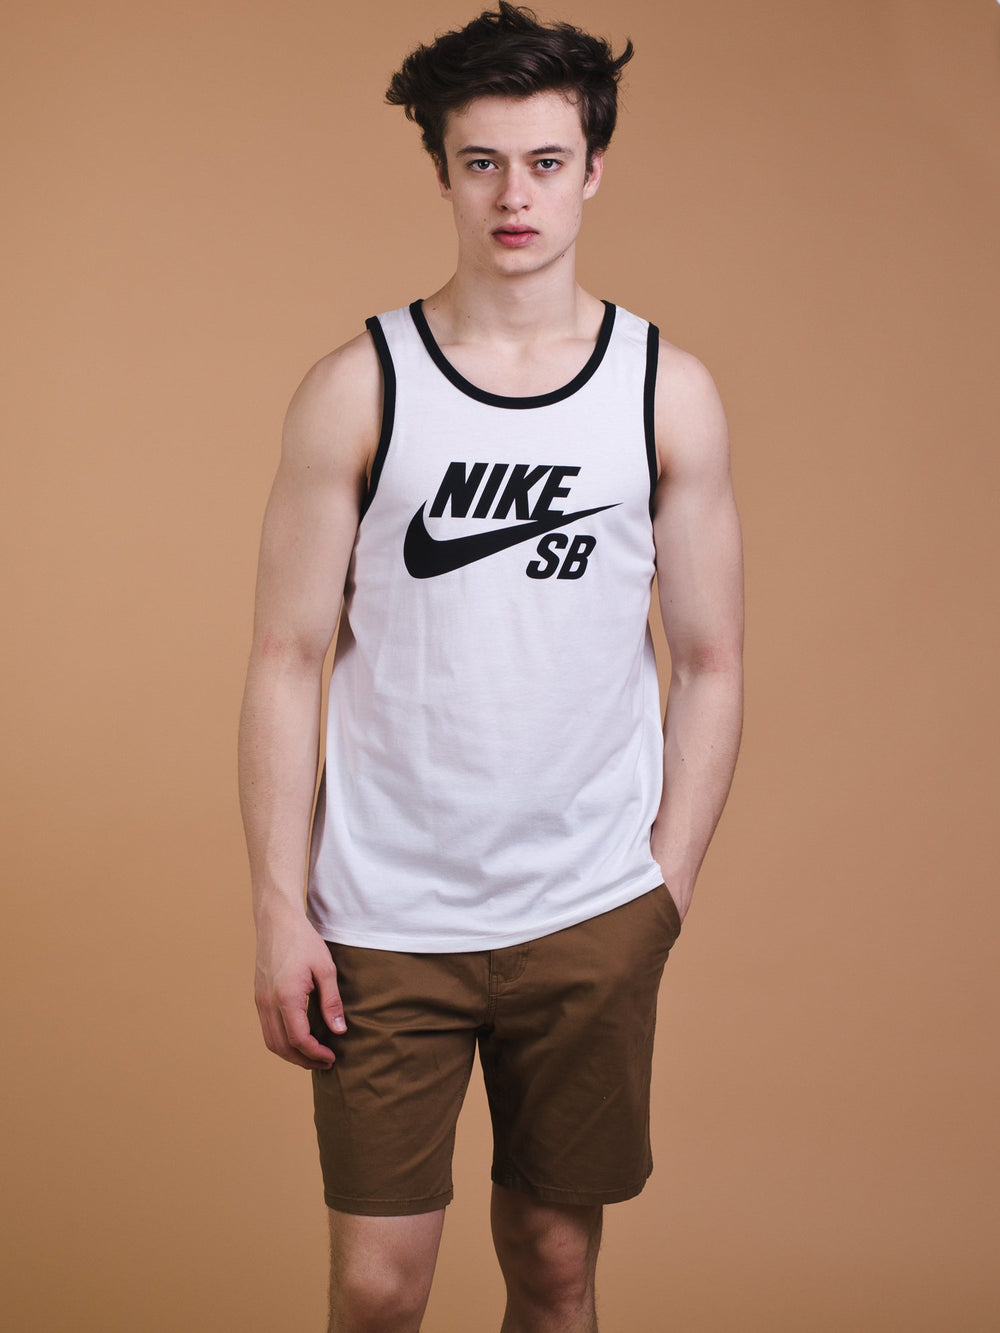 MENS SB TANK RINGER - WHITE/BLACK- CLEARANCE